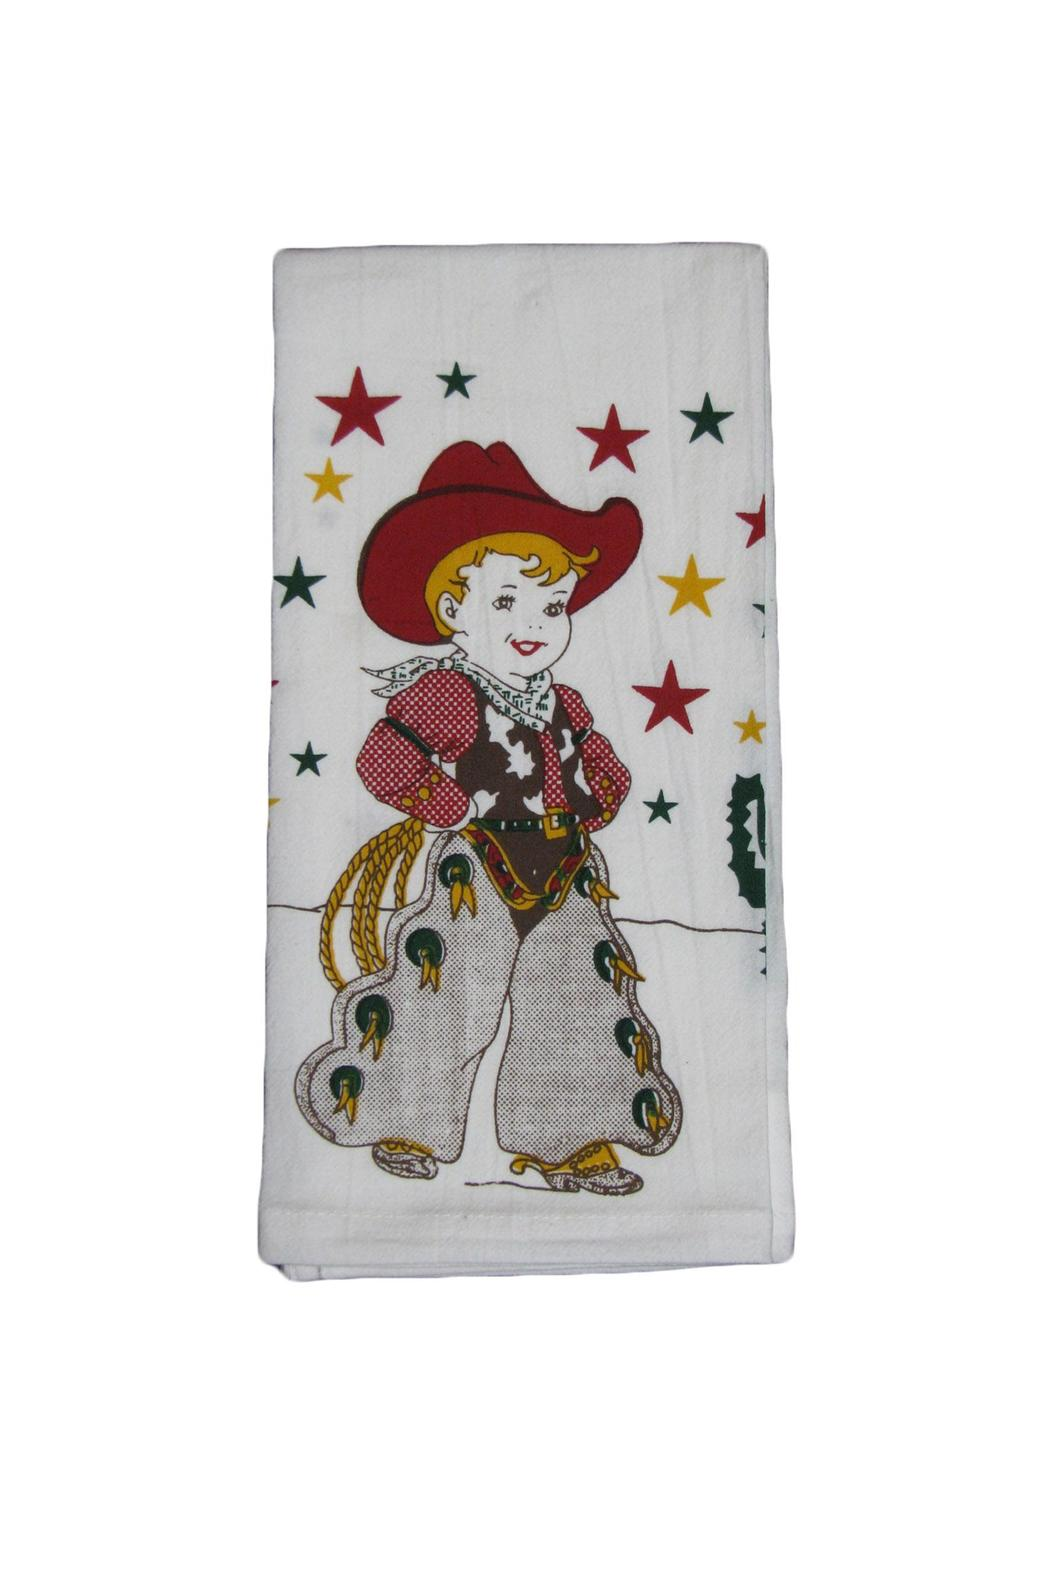 Retro Kitchen Towel